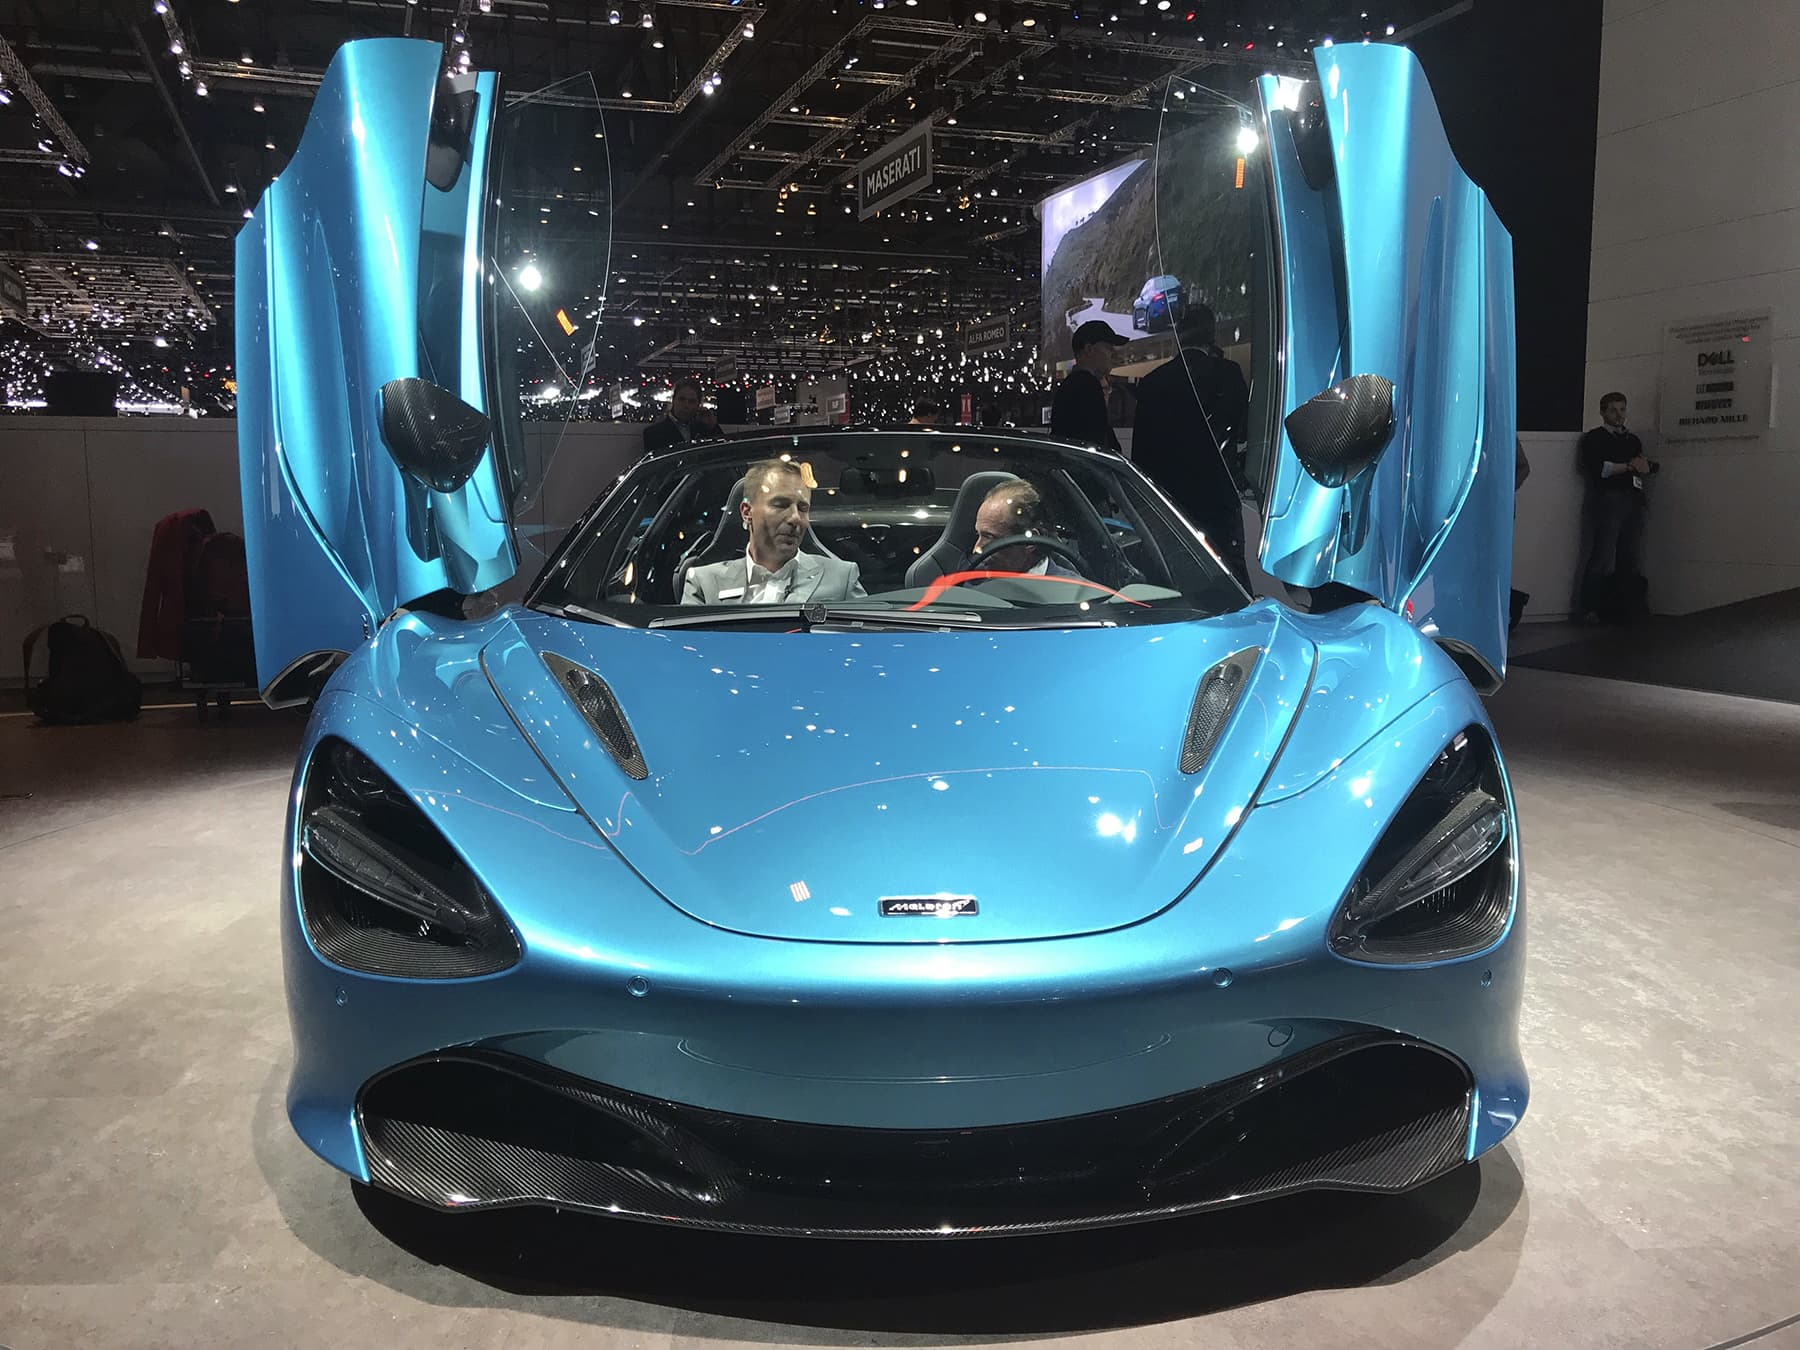 The new Mclaren 720S Spider is presented during the press day at the 89th Geneva International Motor Show in Geneva, Switzerland on Wednesday. — AP